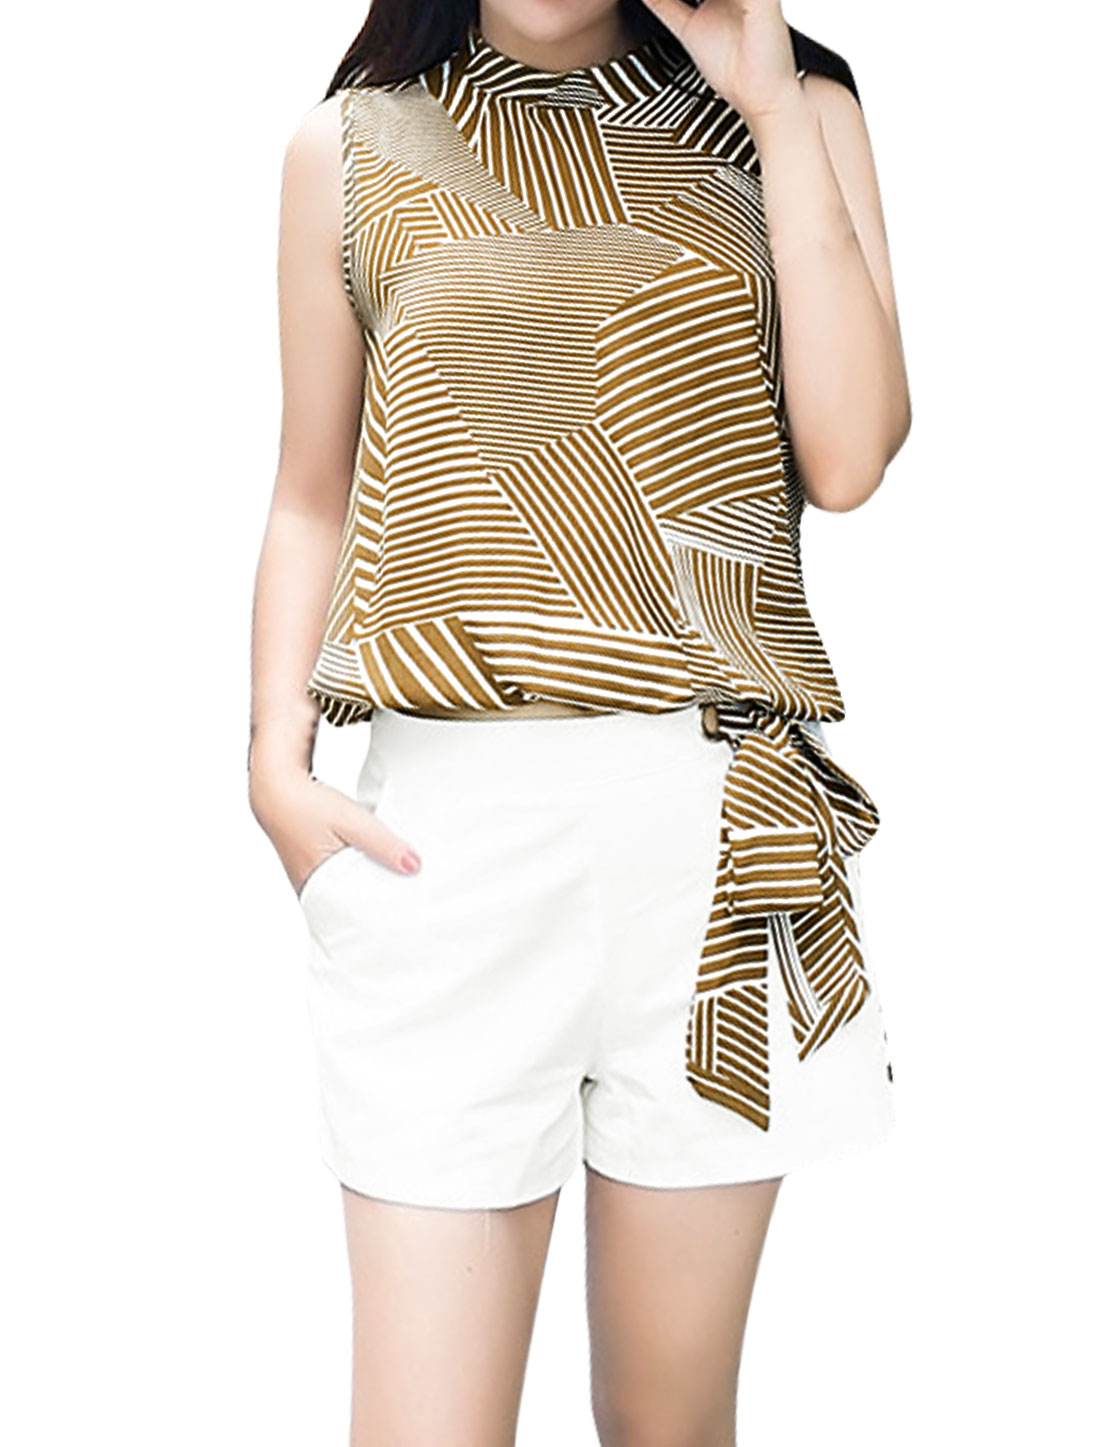 Women Stripes Self Tie Belt Top w Grommet Design Shorts Set Beige White M